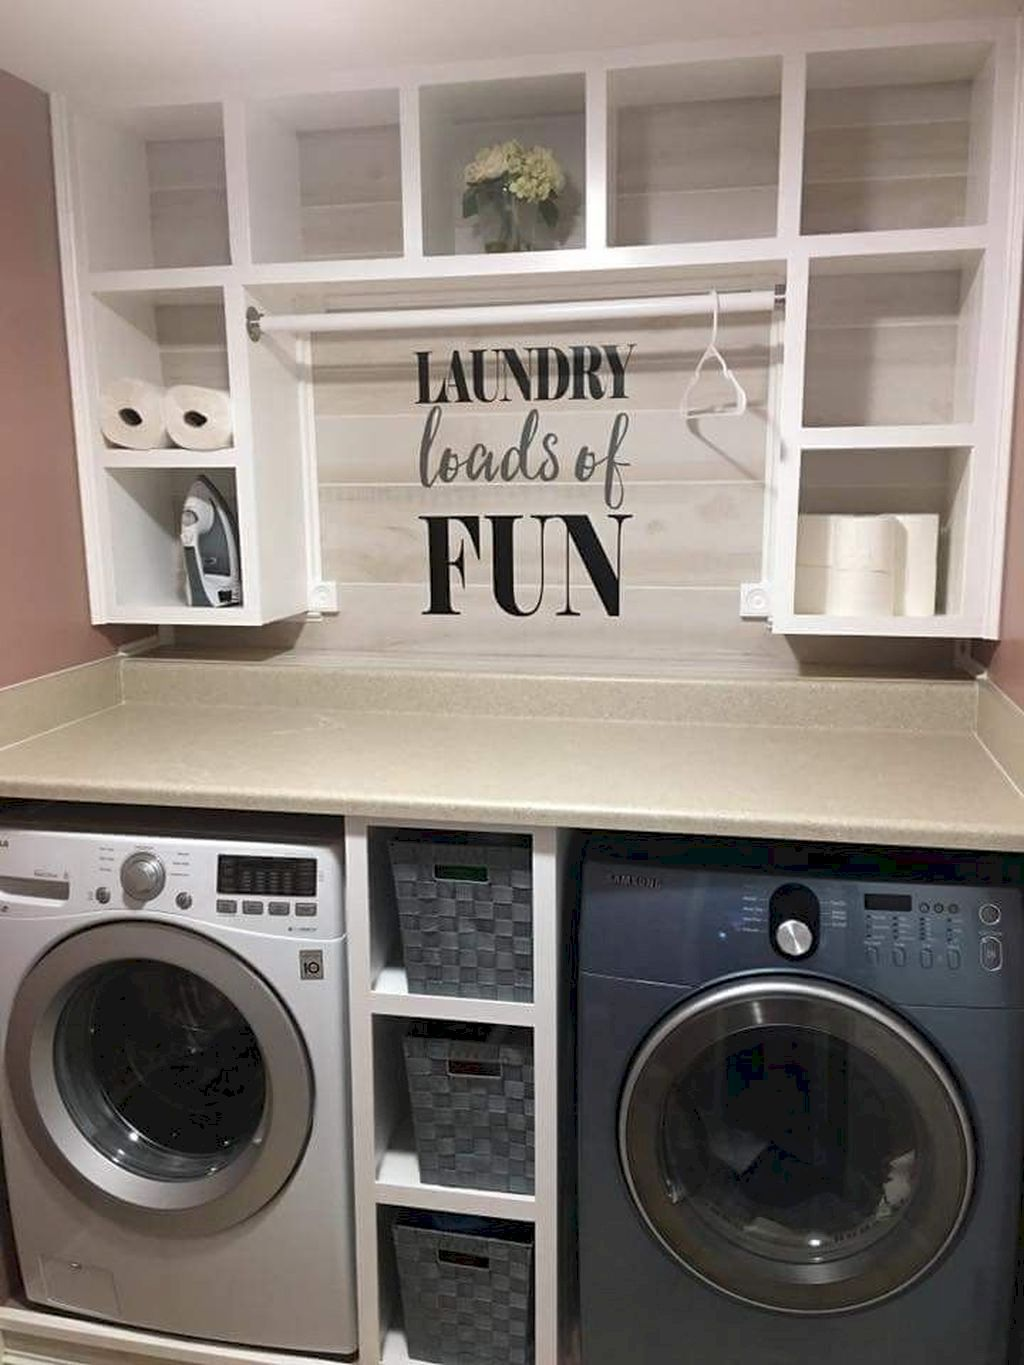 Great Condense the Mess within the Laundry Room With These Suggestions images